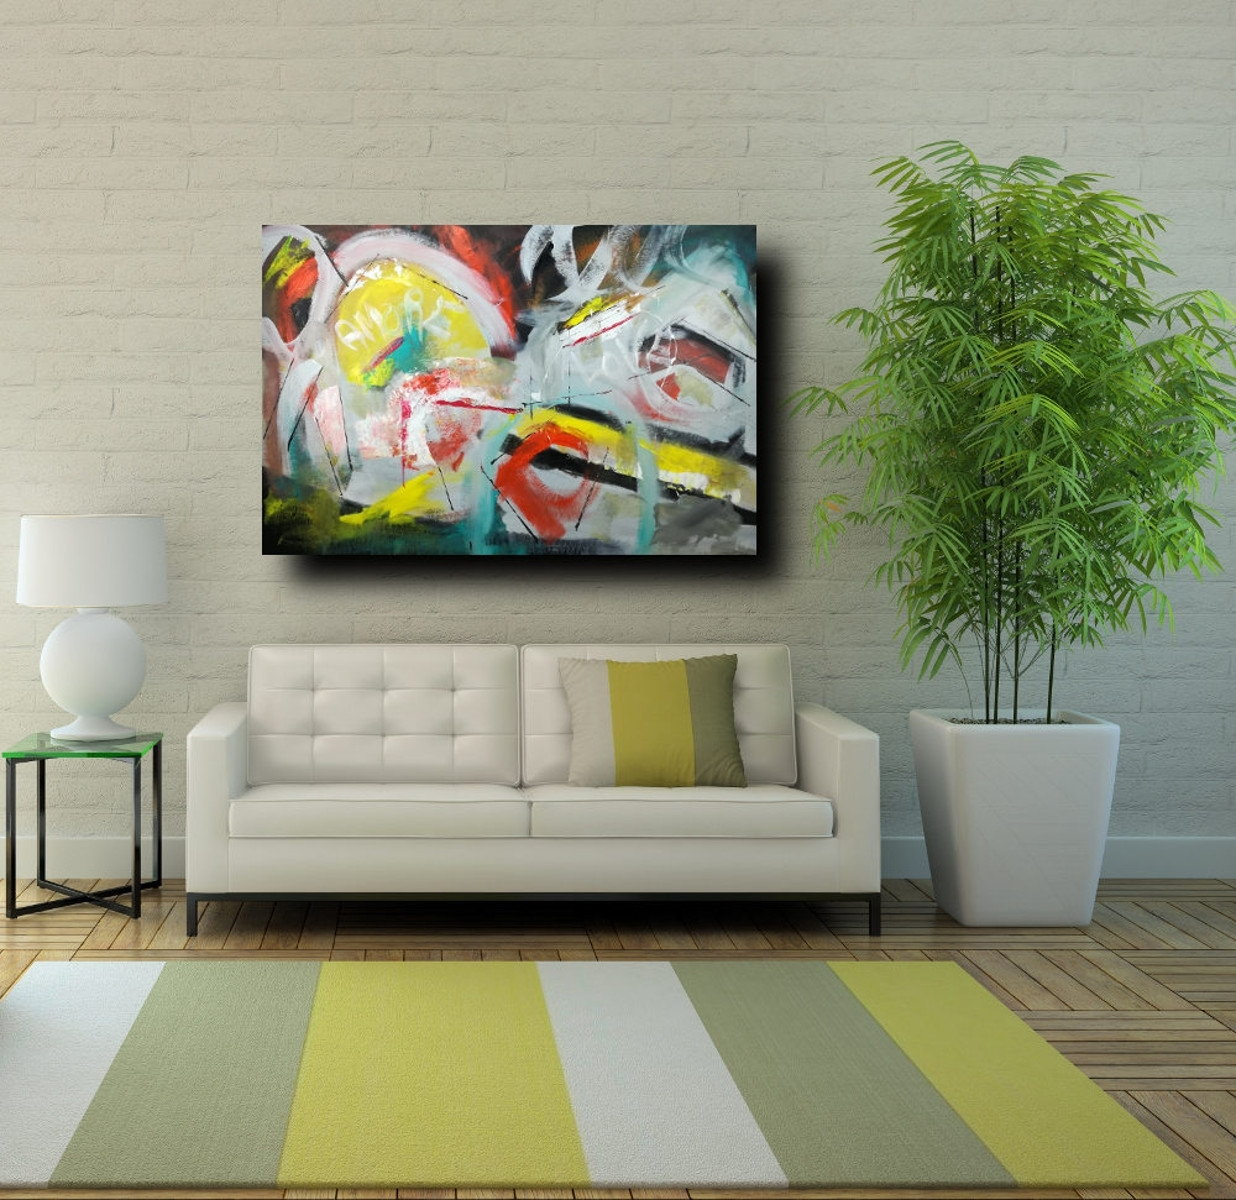 Large Wall Art Modern On Canvas 120X80 Intended For Most Current Modern Large Canvas Wall Art (View 18 of 20)